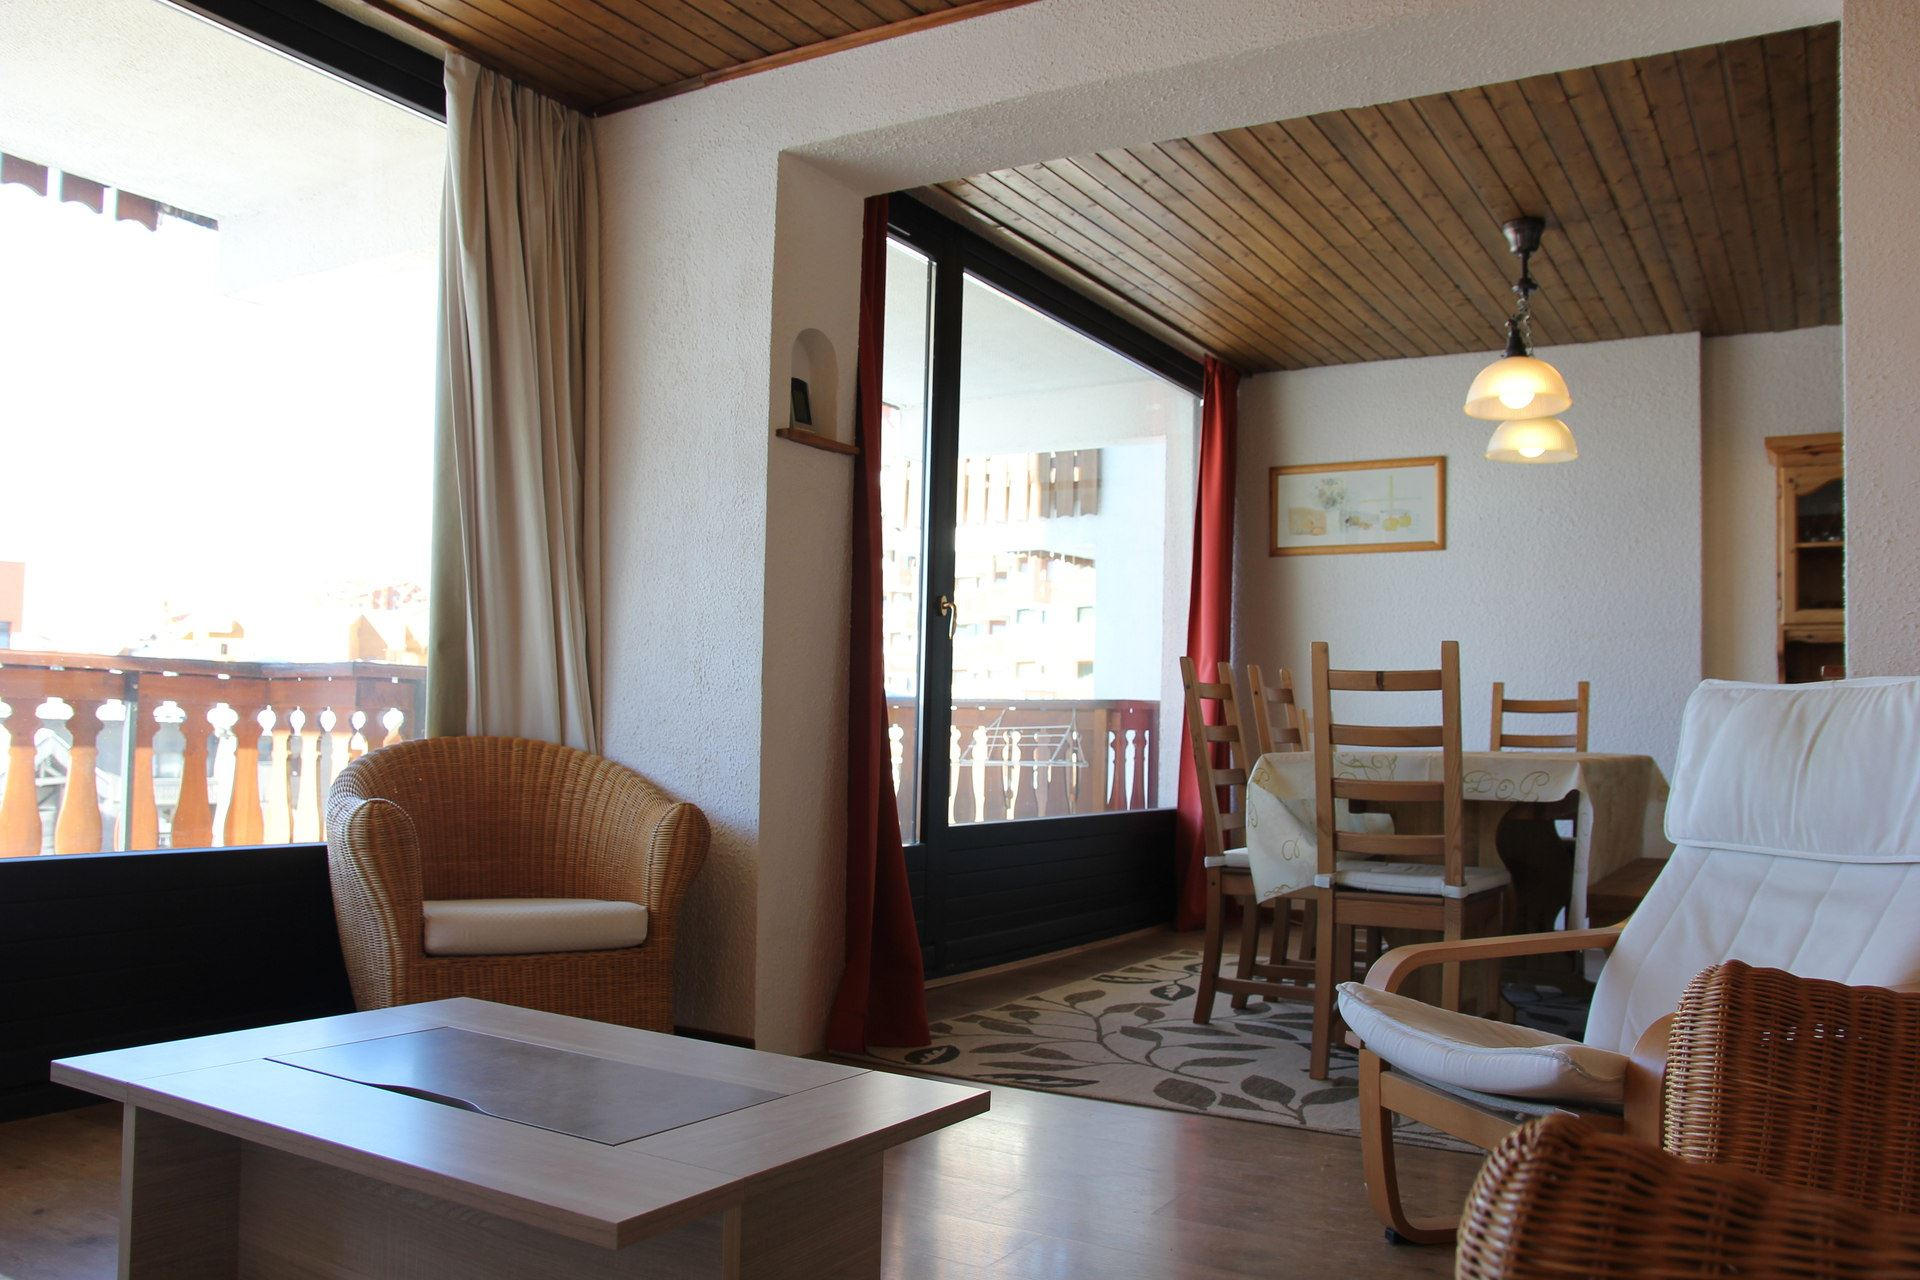 ETERLOUS 30 / APARTMENT 3 ROOMS 8 PERSONS - CI